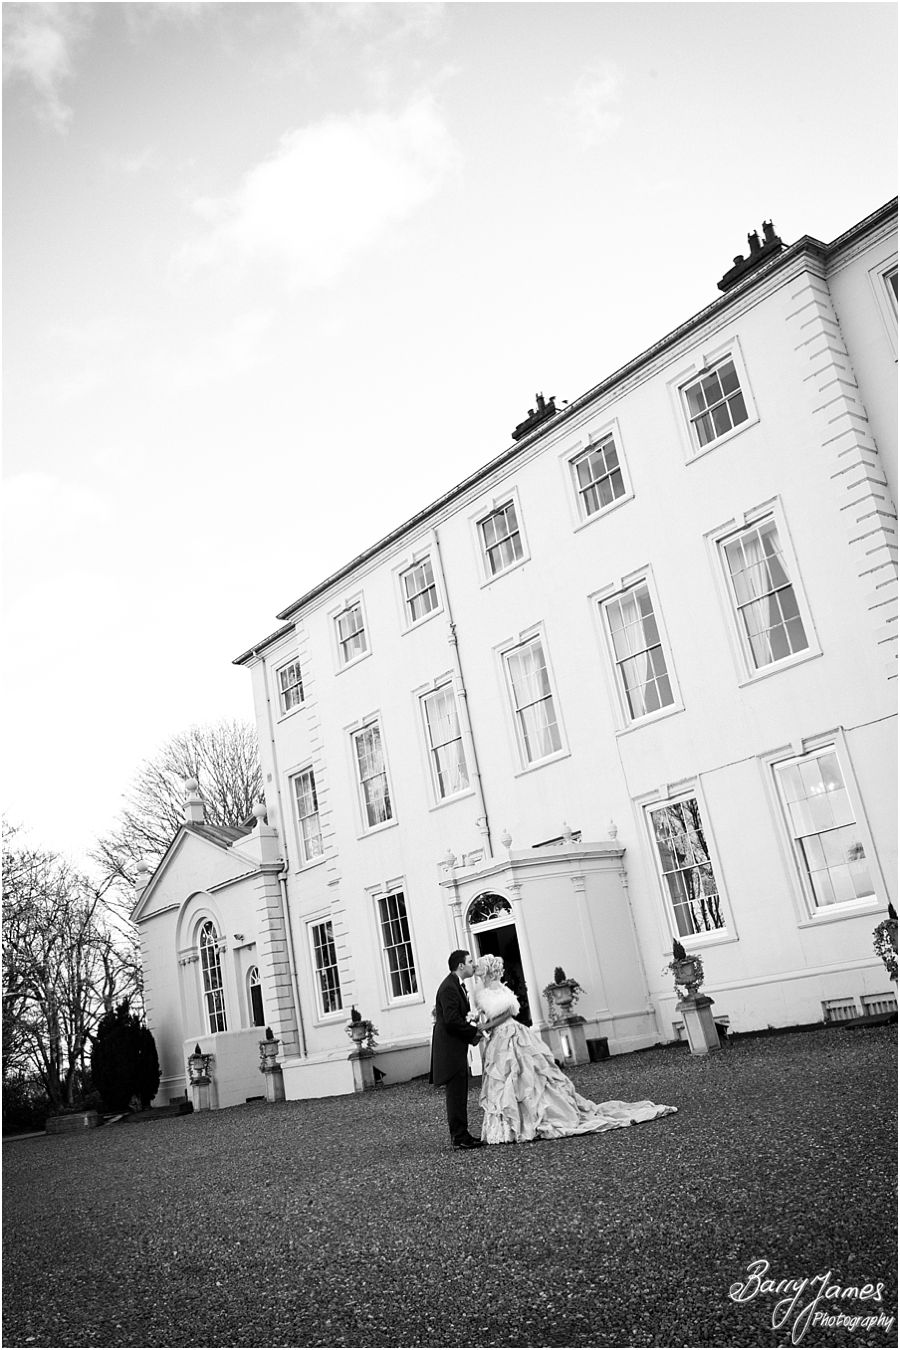 Winter wedding in a perfect setting, Somerford Hall in Brewood by Preferred Wedding Photographer Barry James